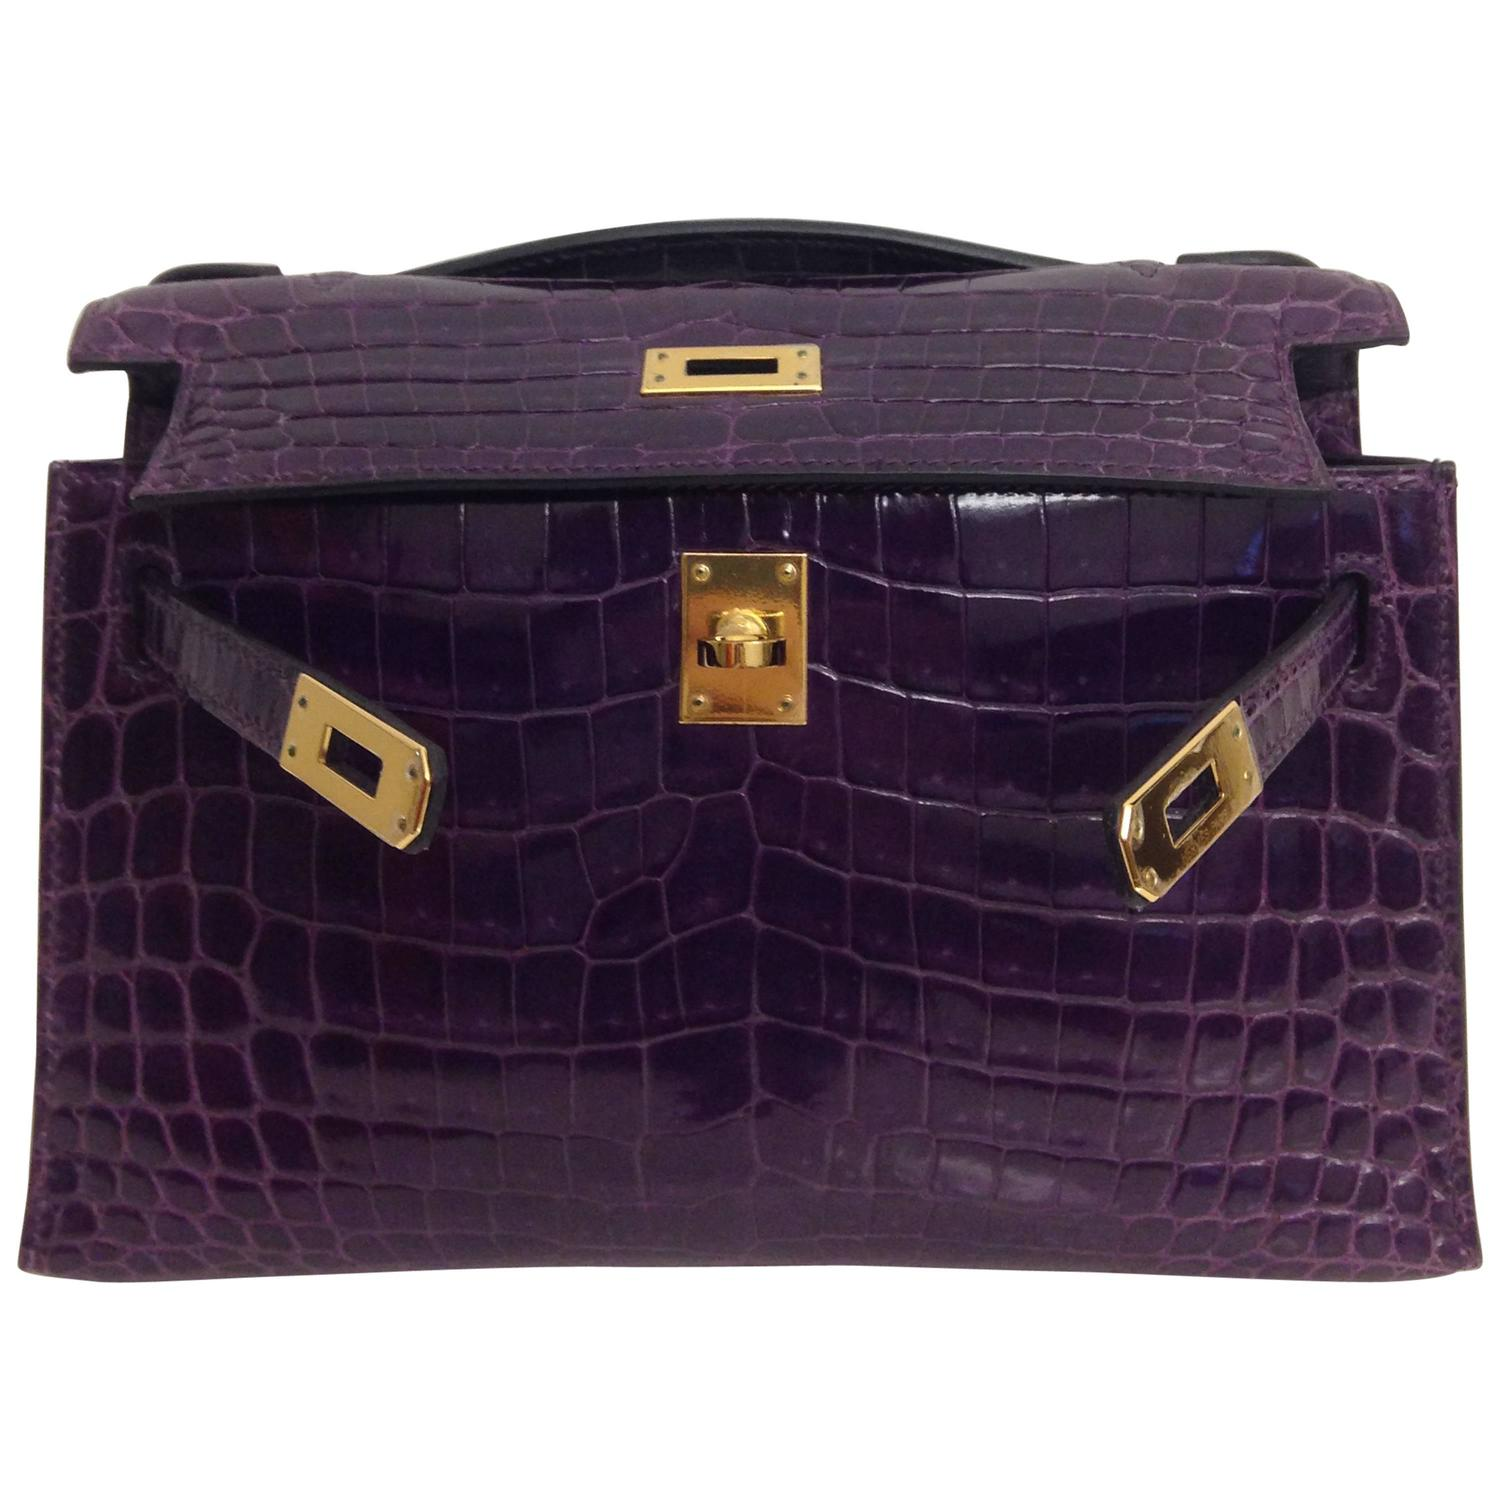 where are brighton purses made - Hermes Kelly Pochette Amethyste Shiny Crocodile Niloticus GHW For ...